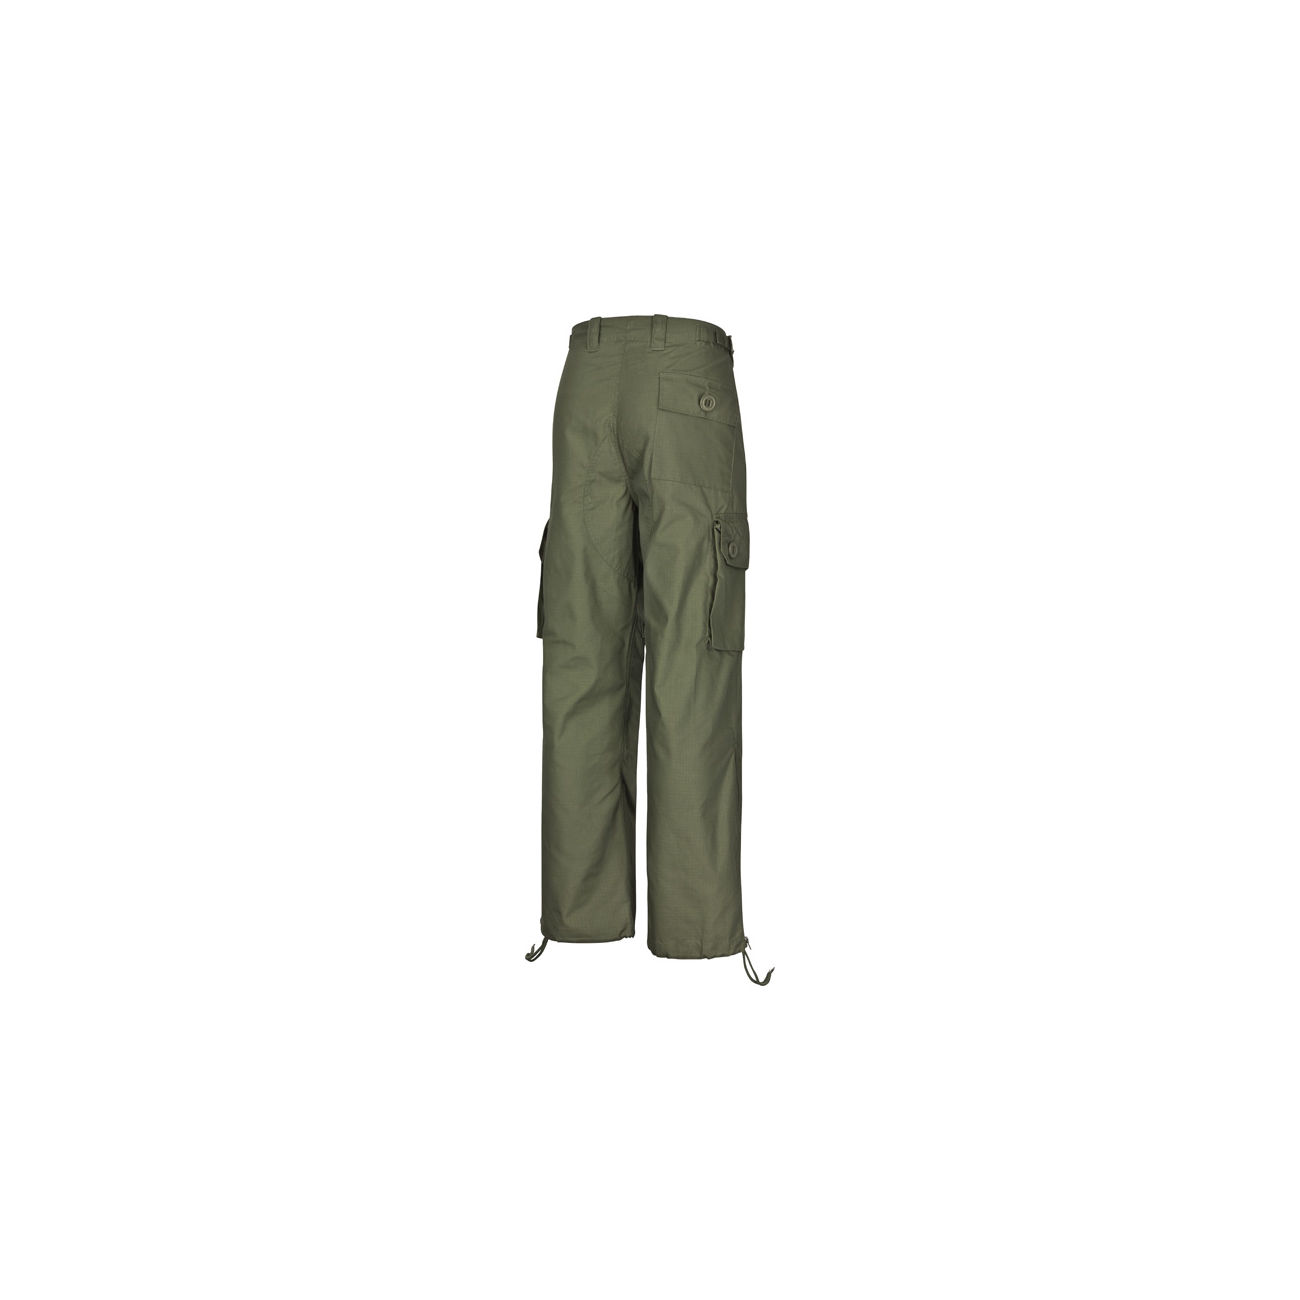 Kommandohose Light Weight Mil-Tec, oliv 1